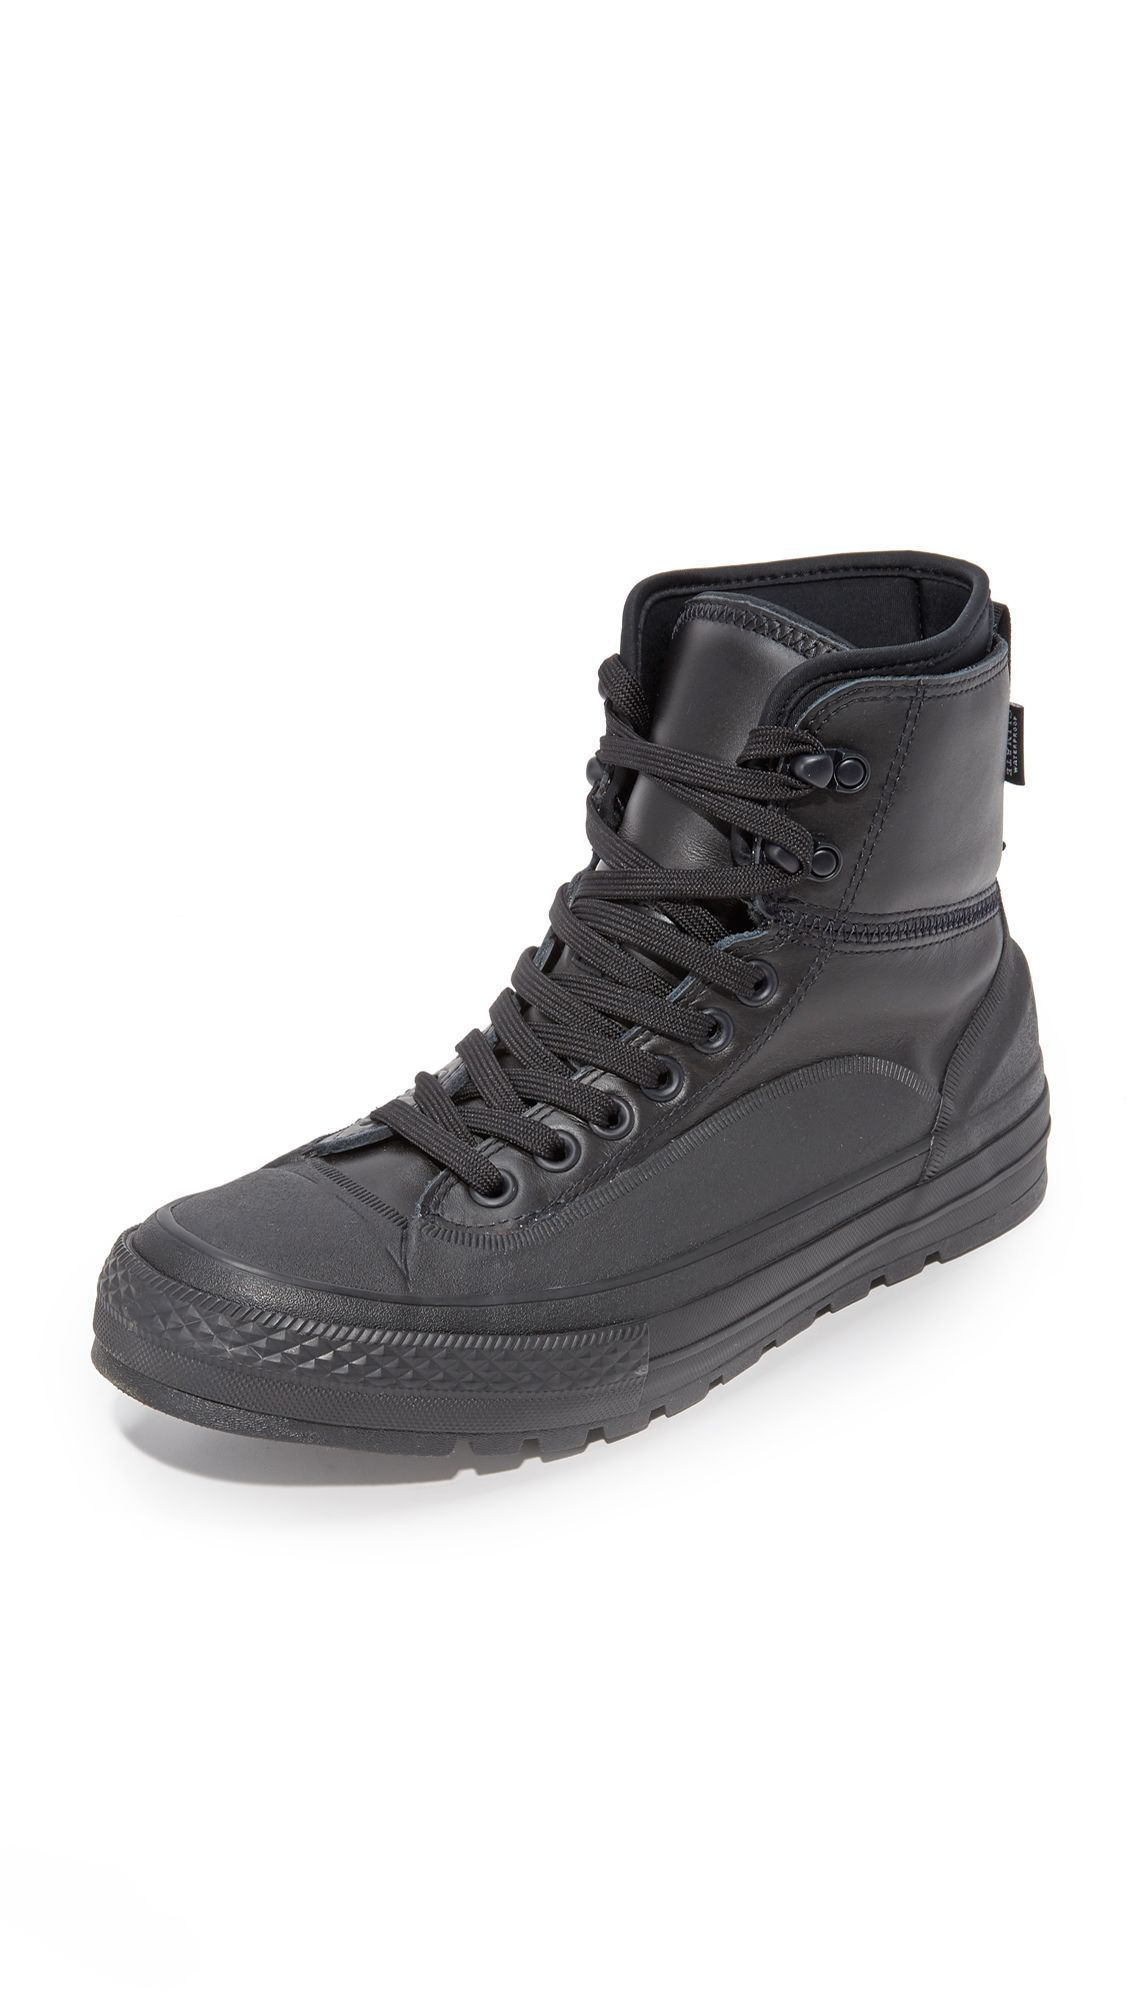 00504e0d38d8 CONVERSE Chuck Taylor Waterproof All Star Tekoa Boots.  converse  shoes   boots